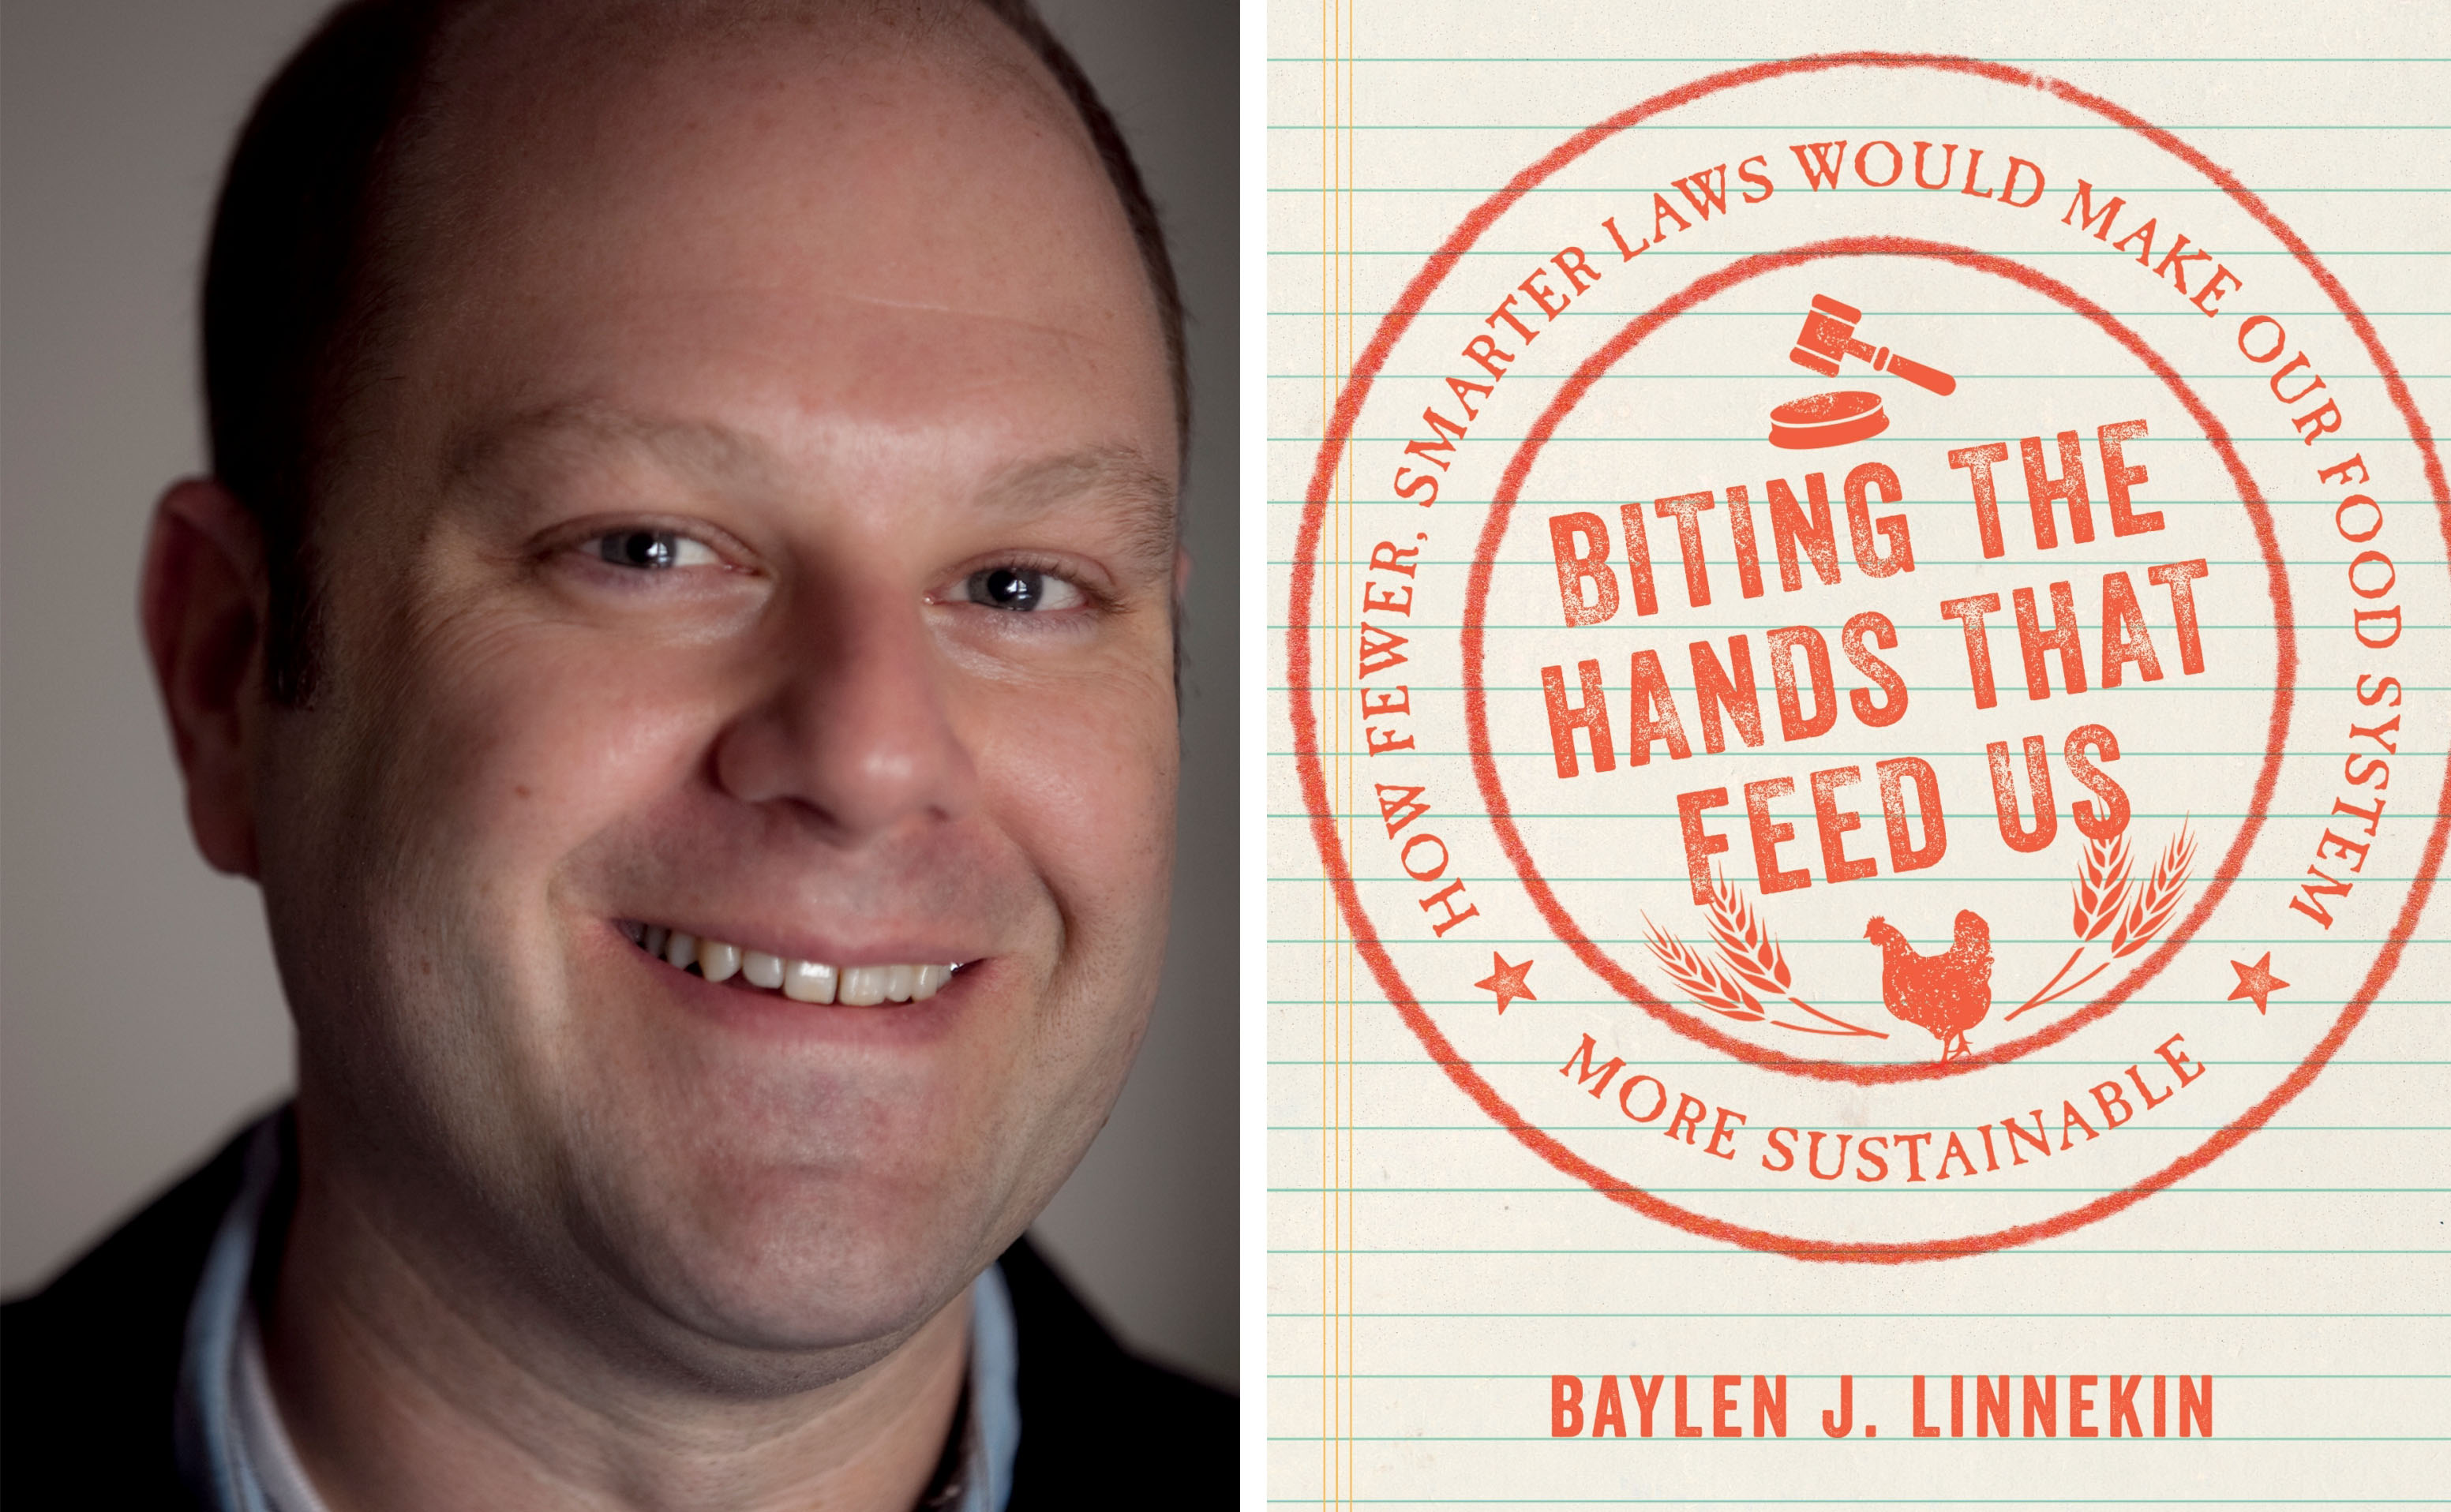 """Baylen Linnekin is the author of """"Biting the Hands that Feed Us: How Fewer, Smarter Laws Would Make Our Food System More Sustainable"""", a book about our failing food regulations."""